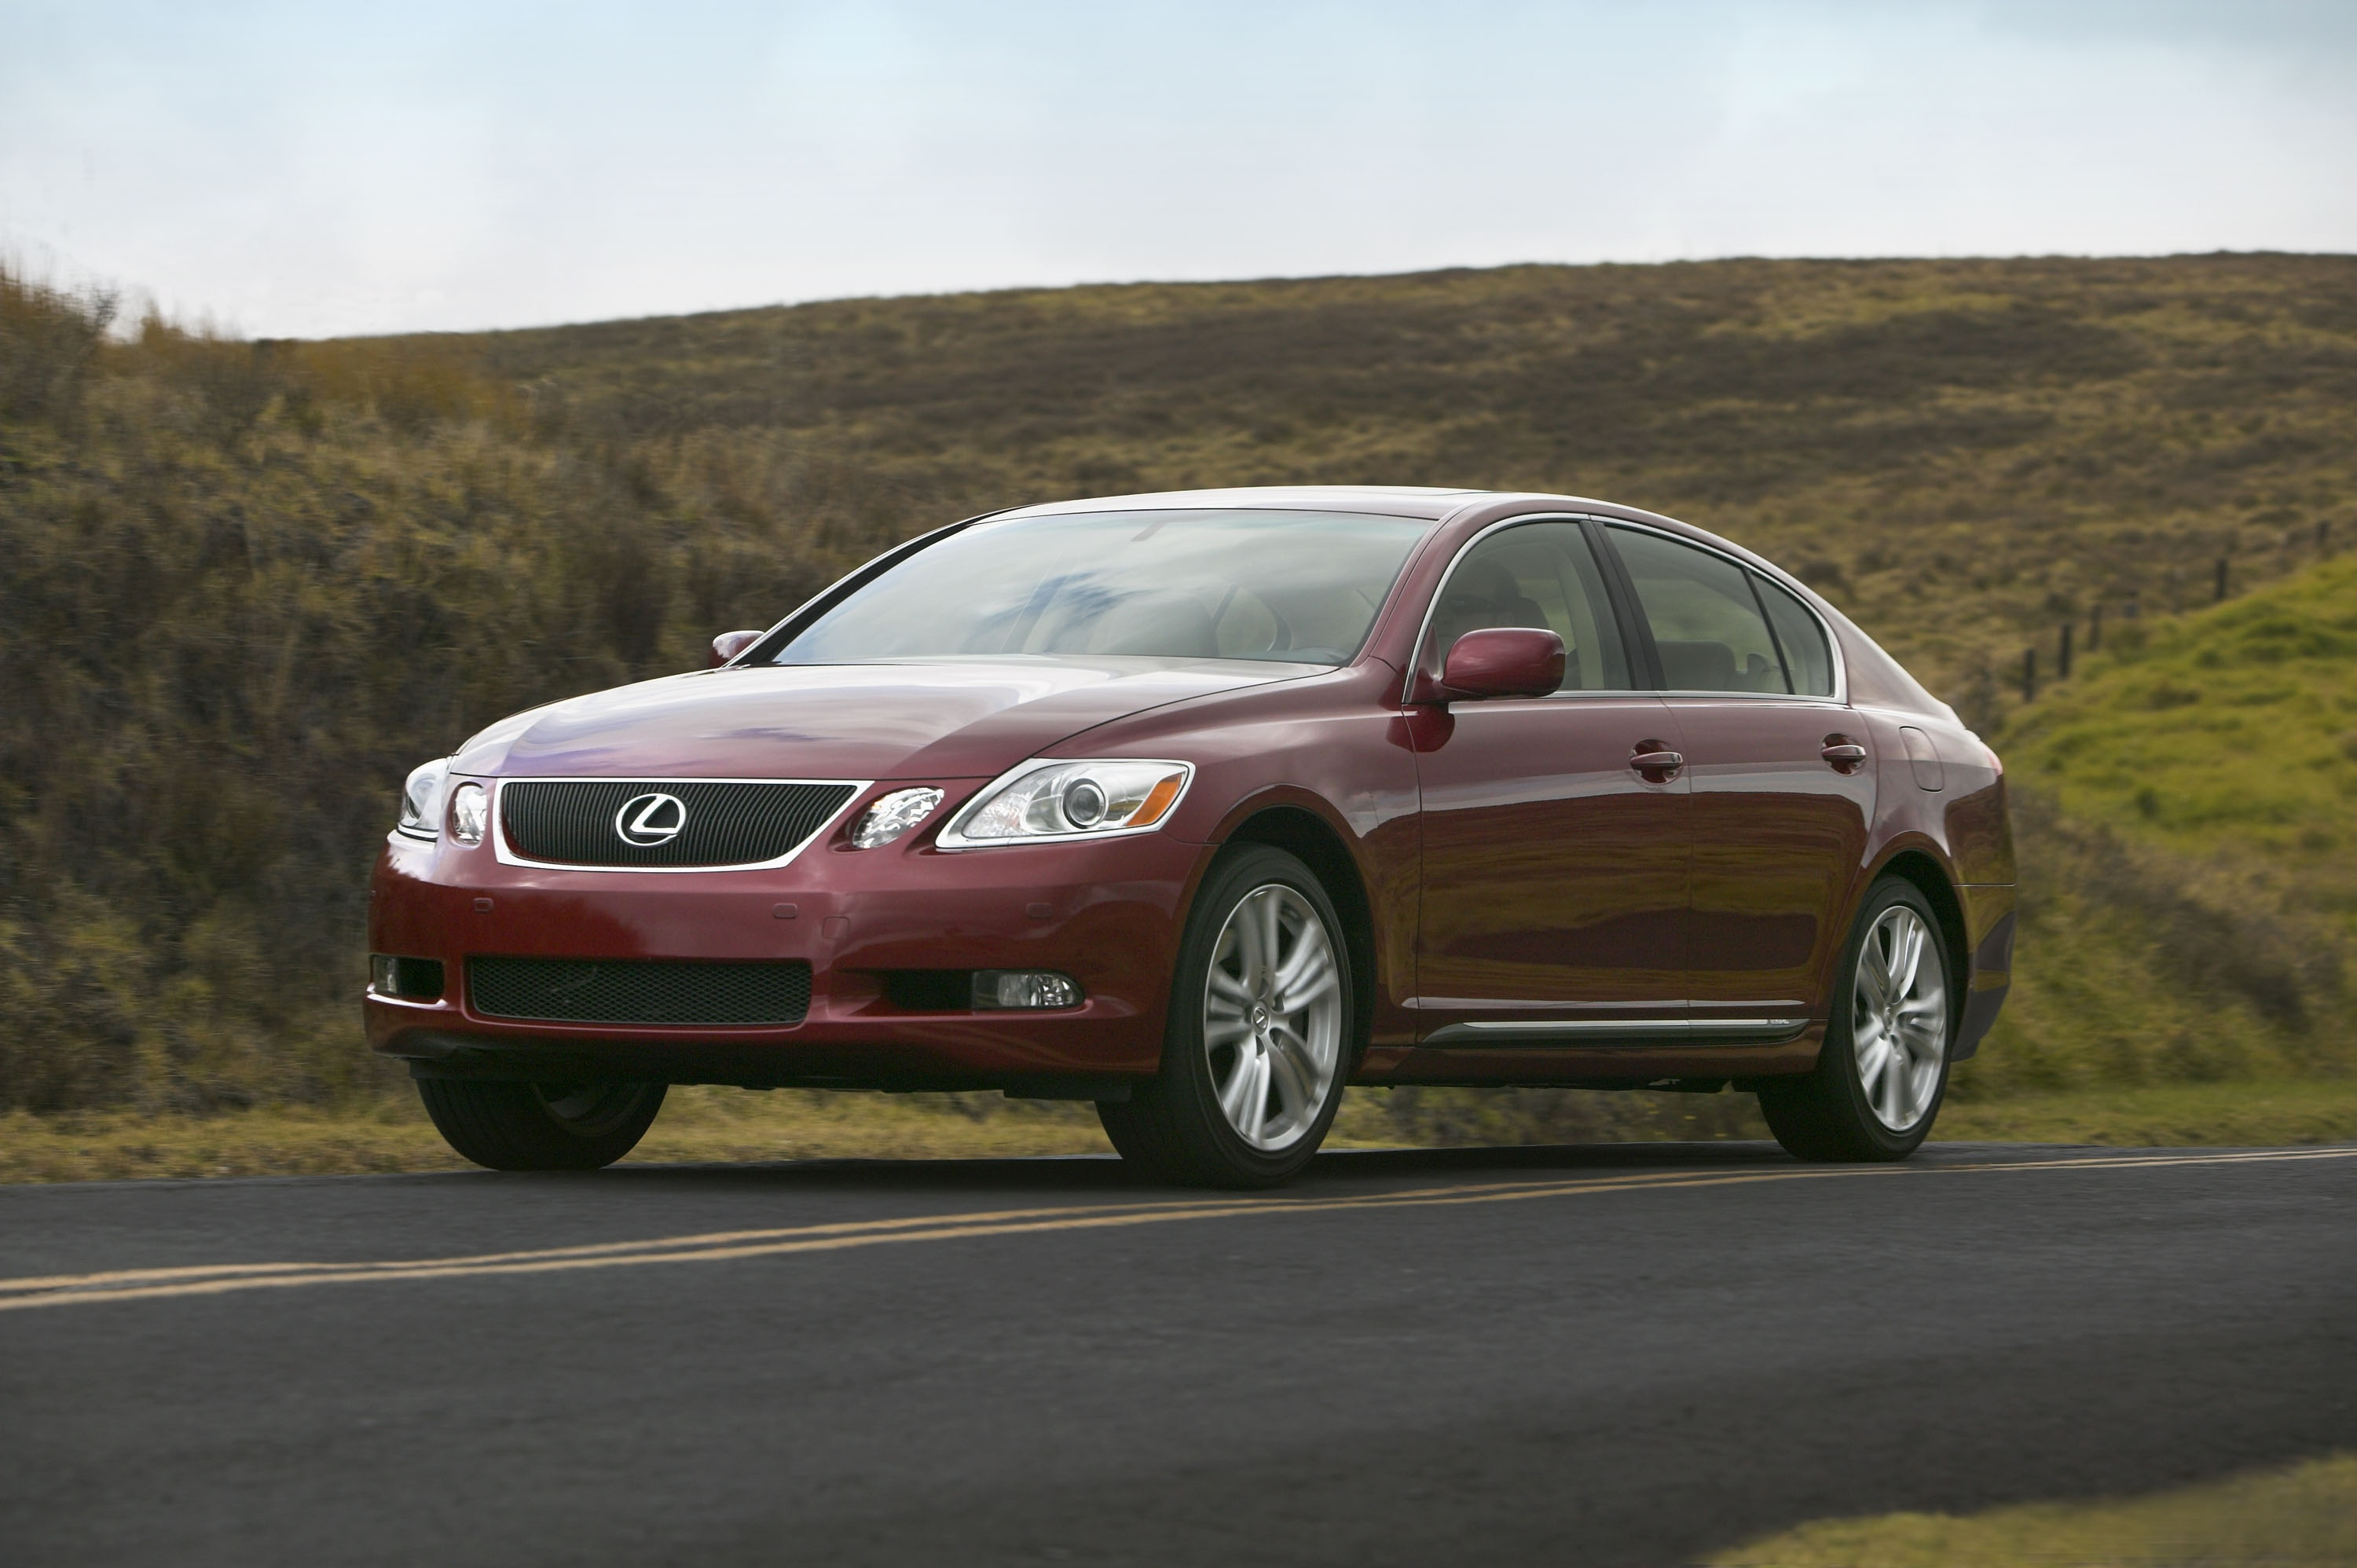 2007 lexus gs 450h review top speed. Black Bedroom Furniture Sets. Home Design Ideas